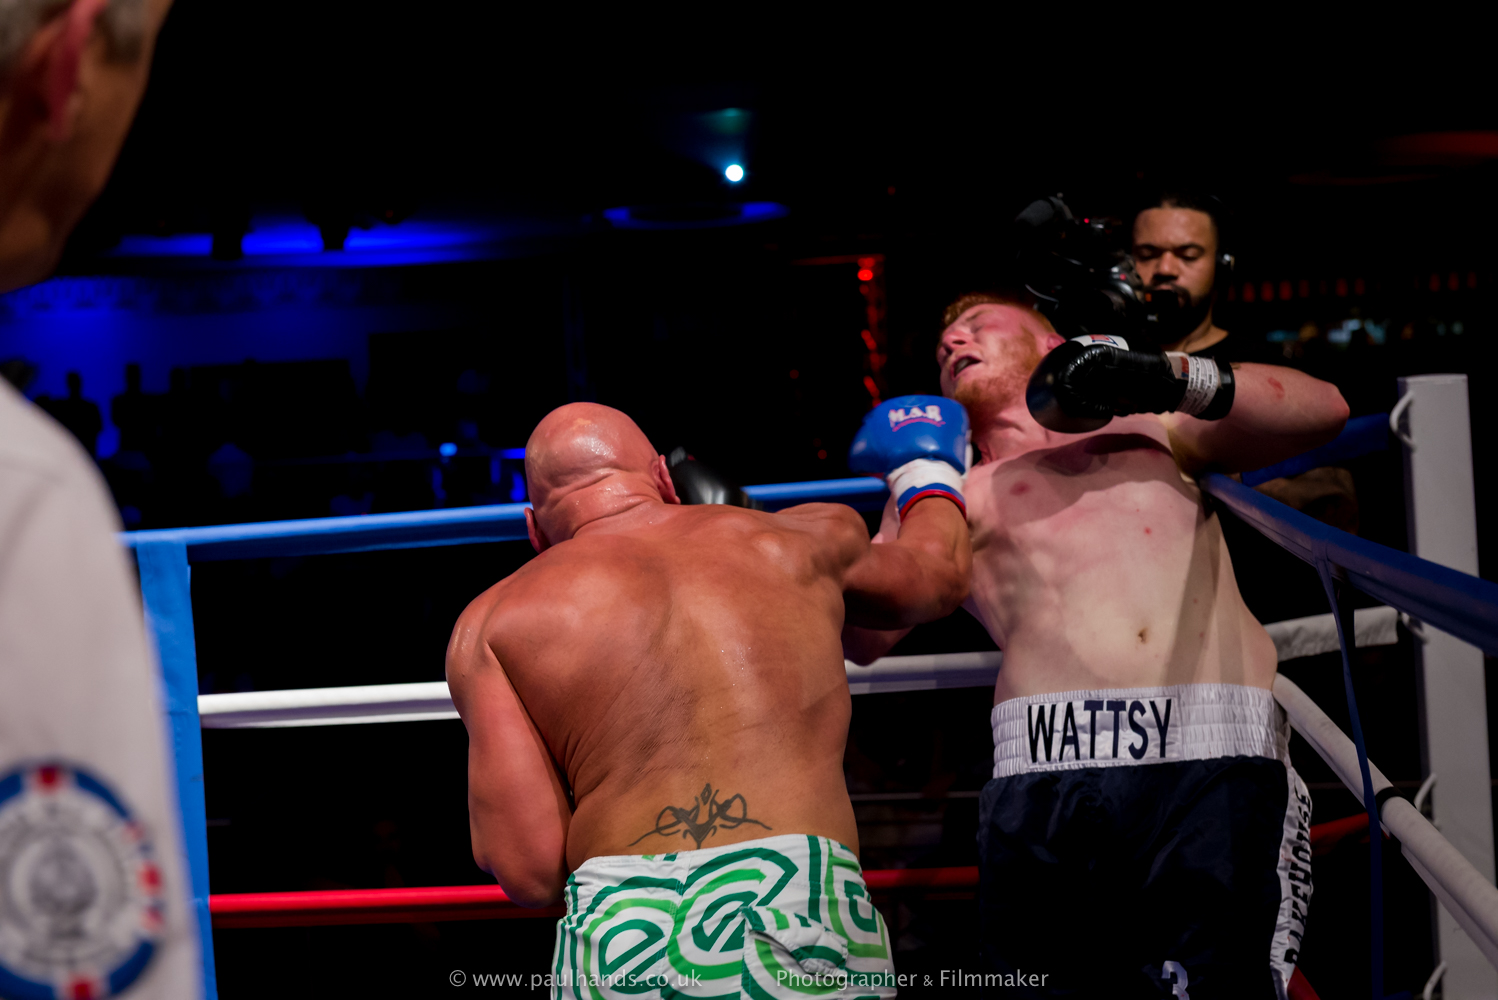 Paul Webb Vs Jake Watts